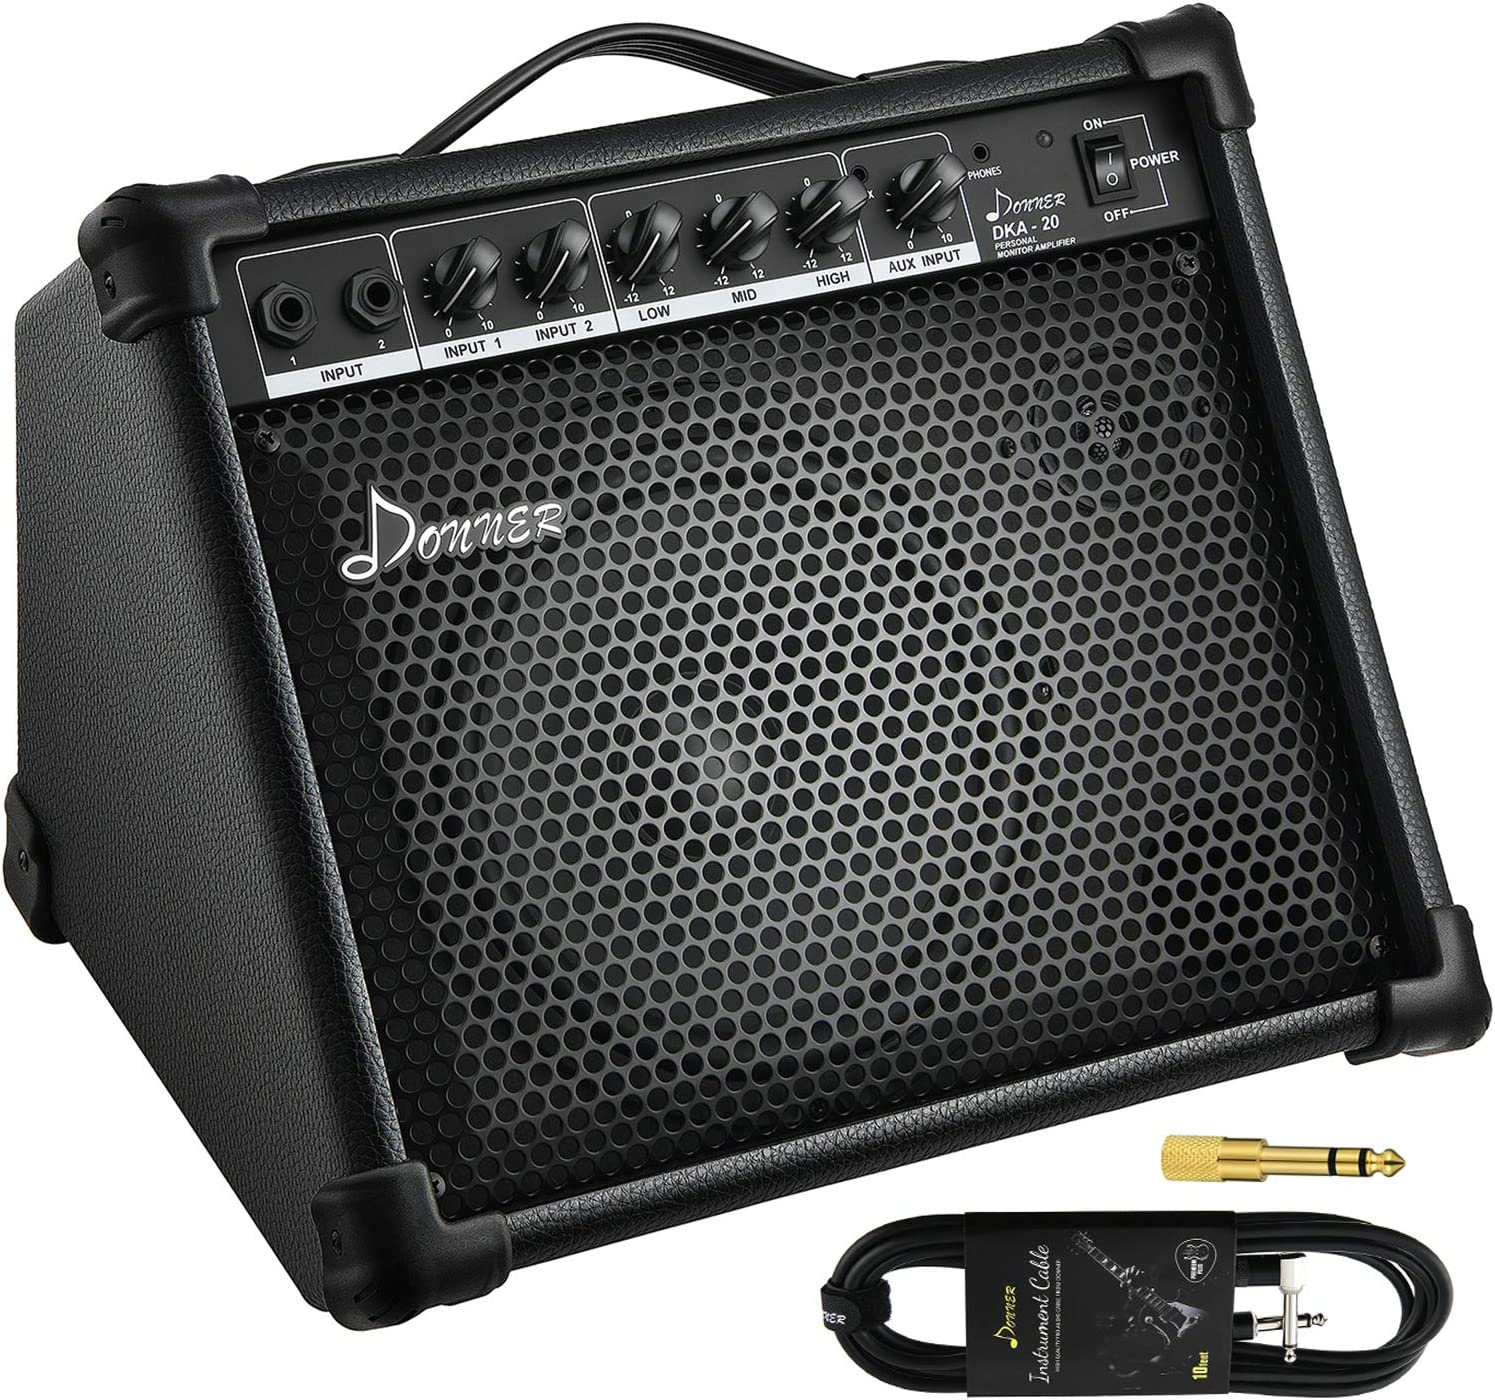 Donner DKA-20 AMP 20-Watt Keyboard Amplifier